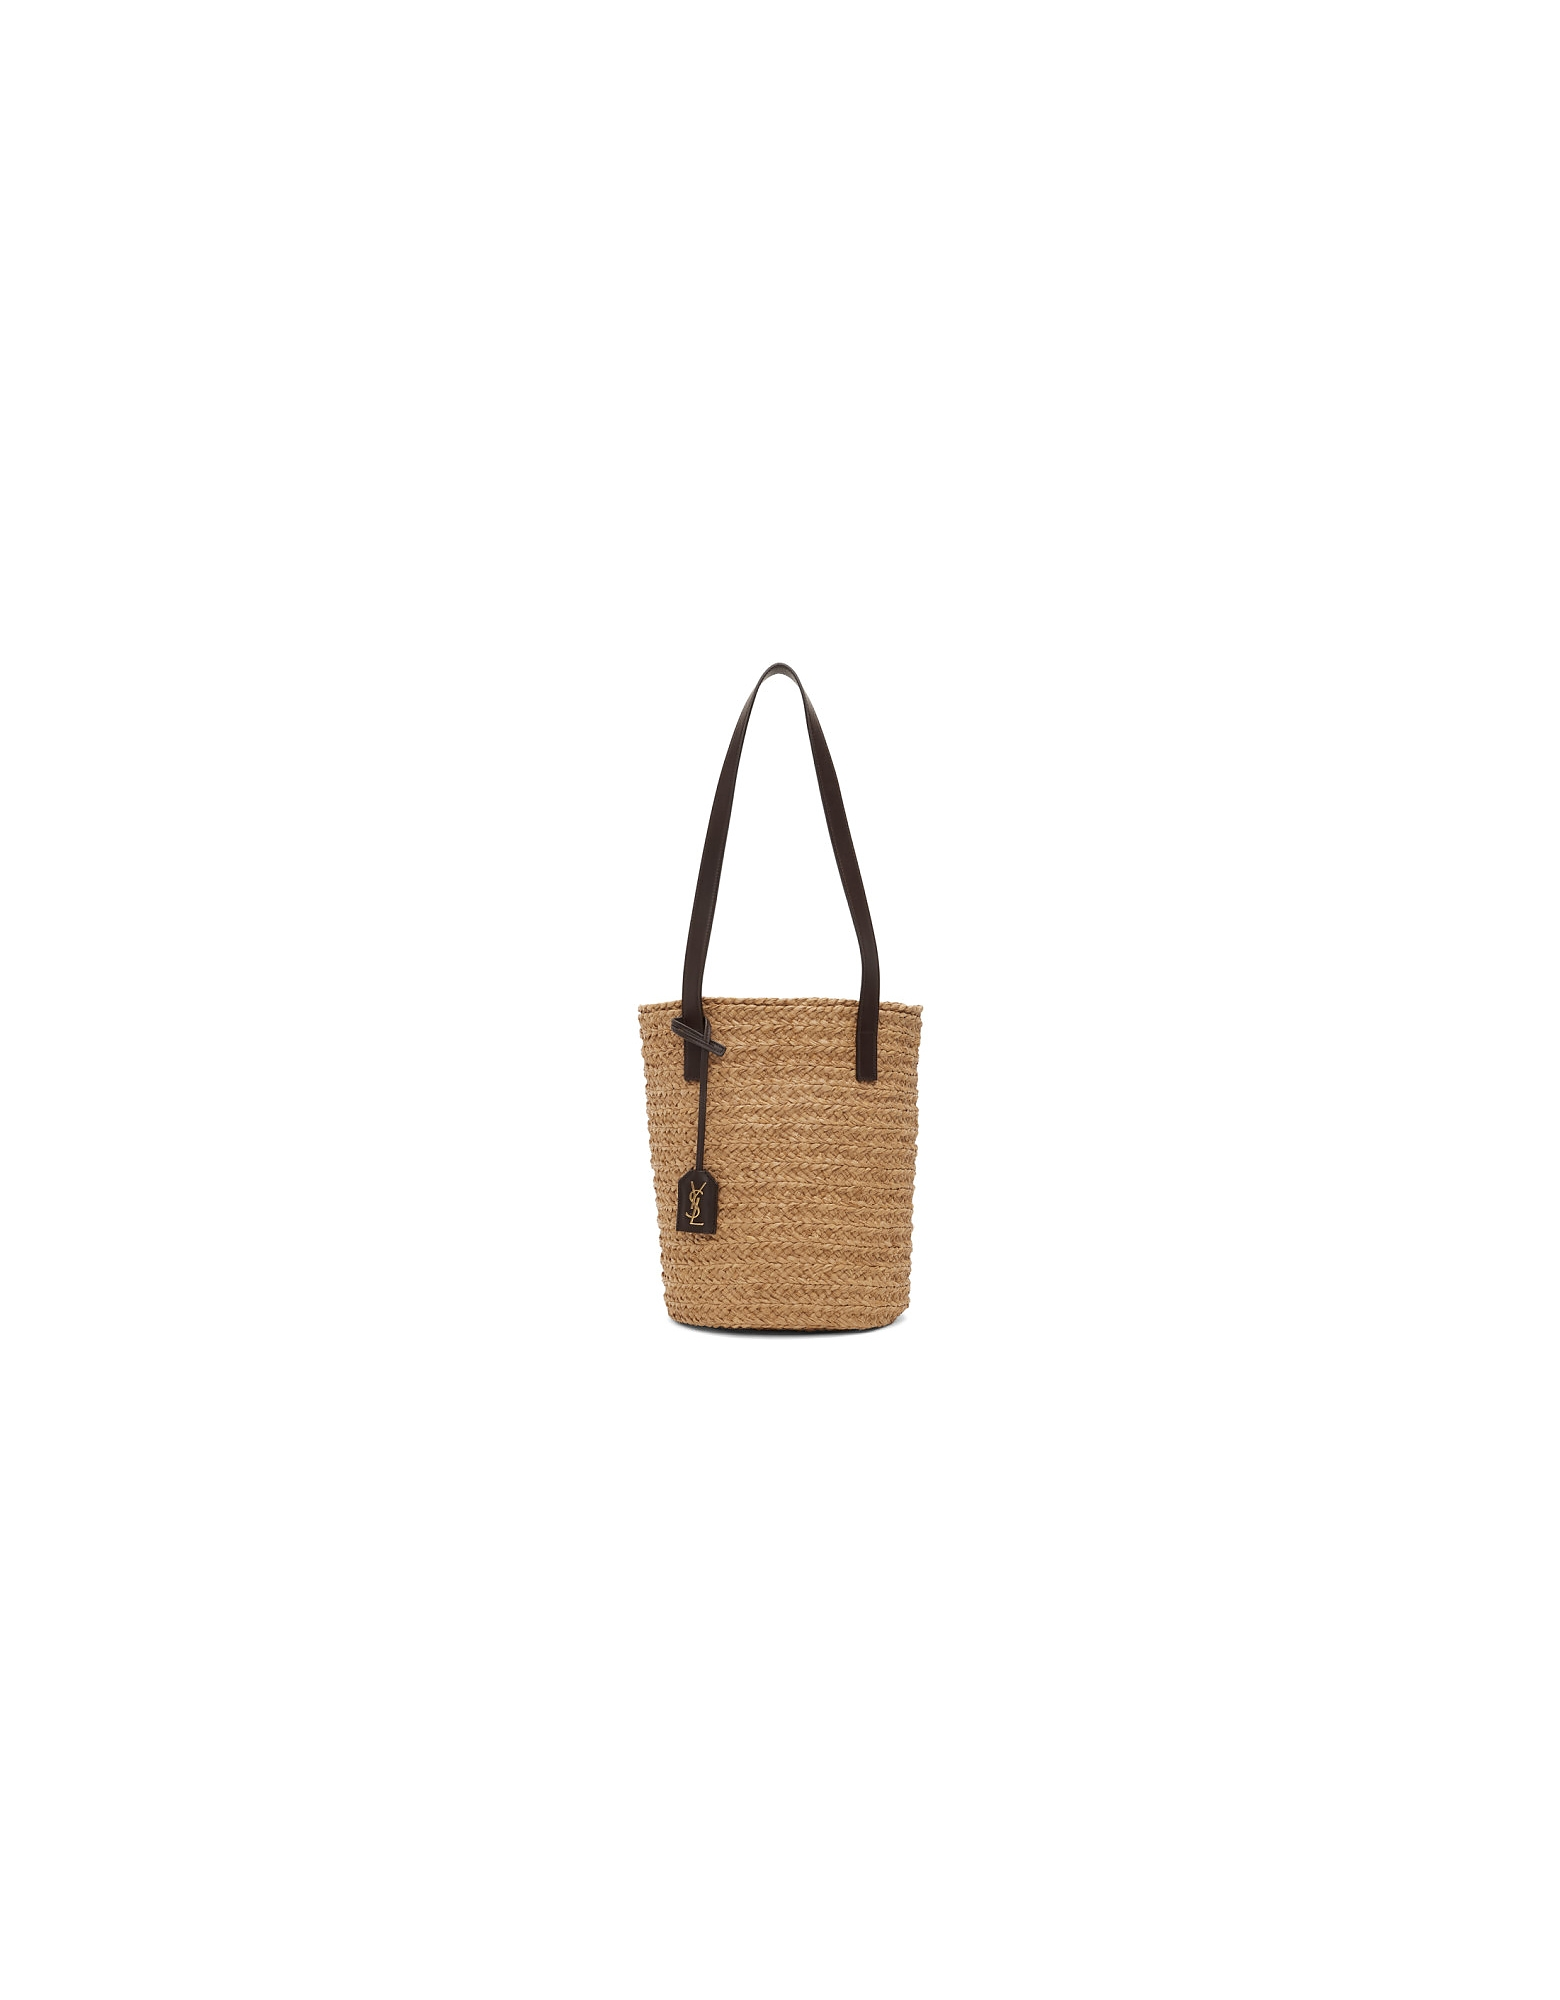 Saint Laurent Designer Handbags, Beige Small Panier Tote